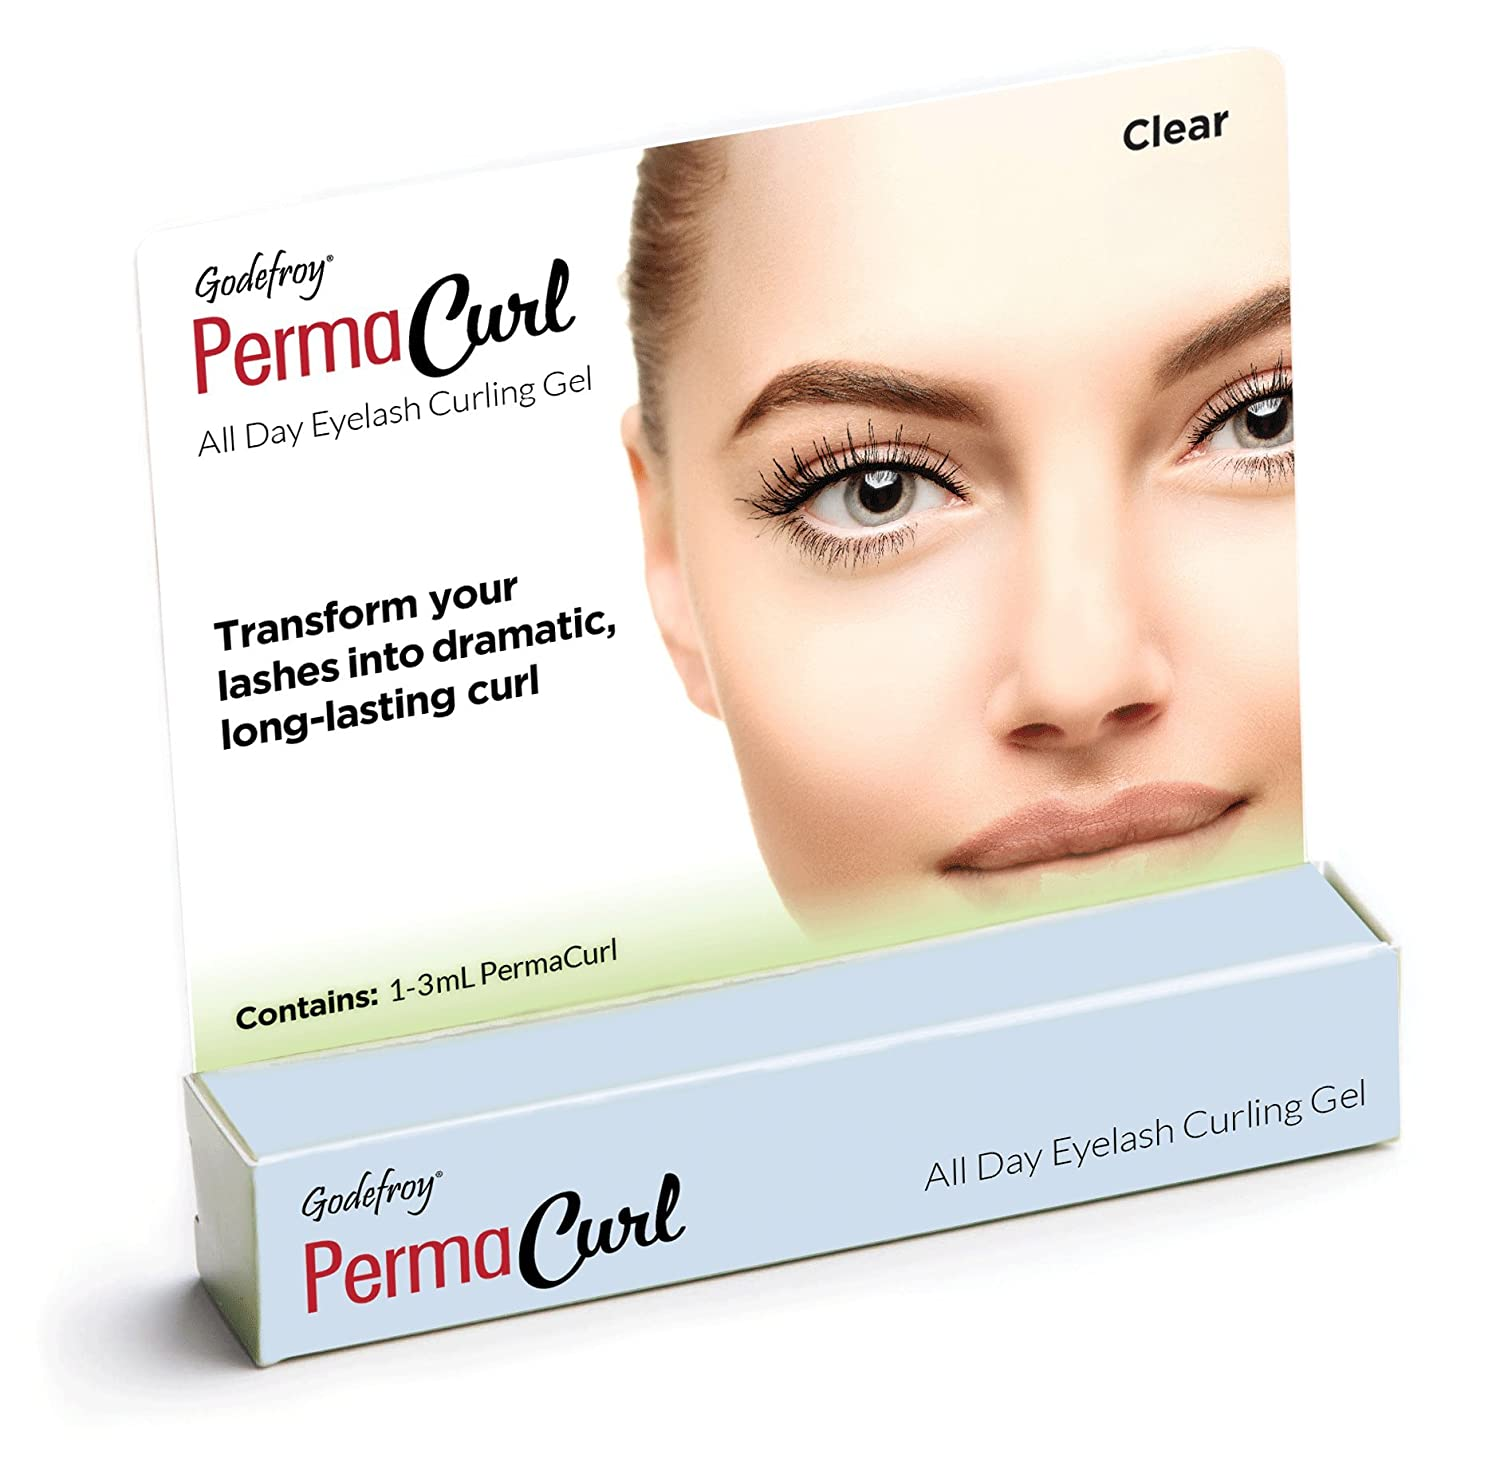 Godefroy Permacurl All Day Eyelash Curling Gel, 0.1 Ounce